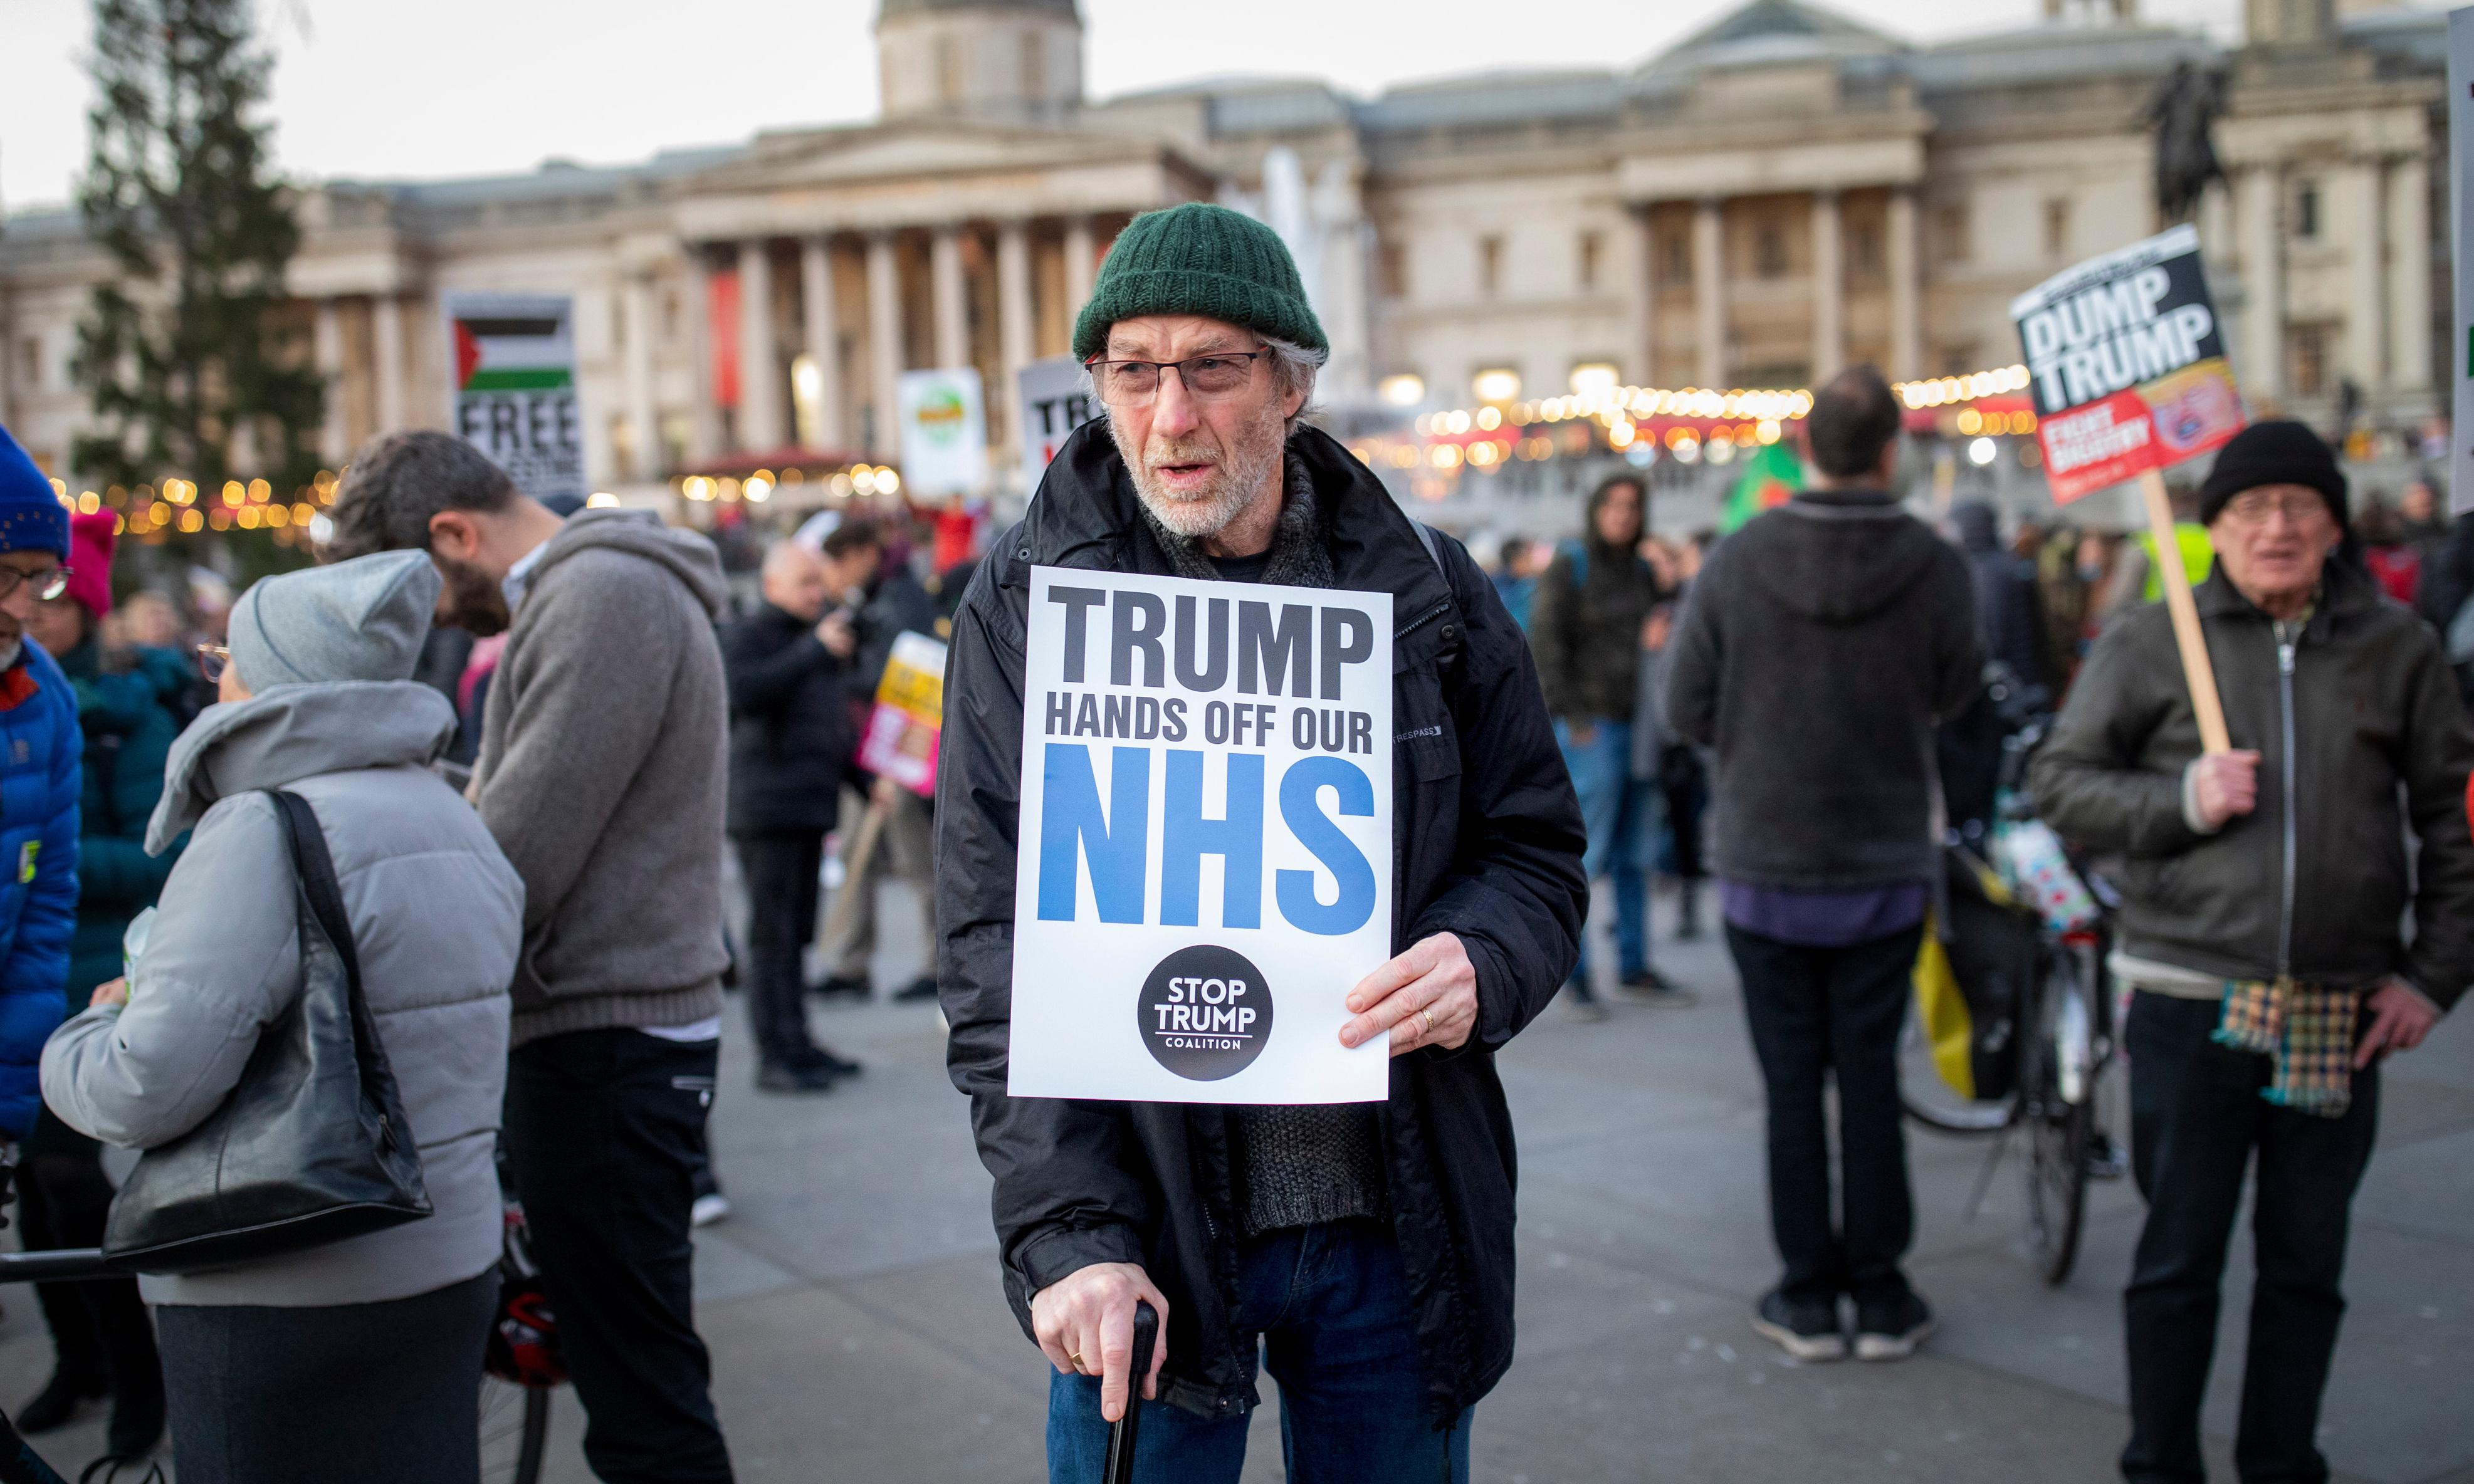 NHS medics reject 'ideology of Trump' in rally against visit